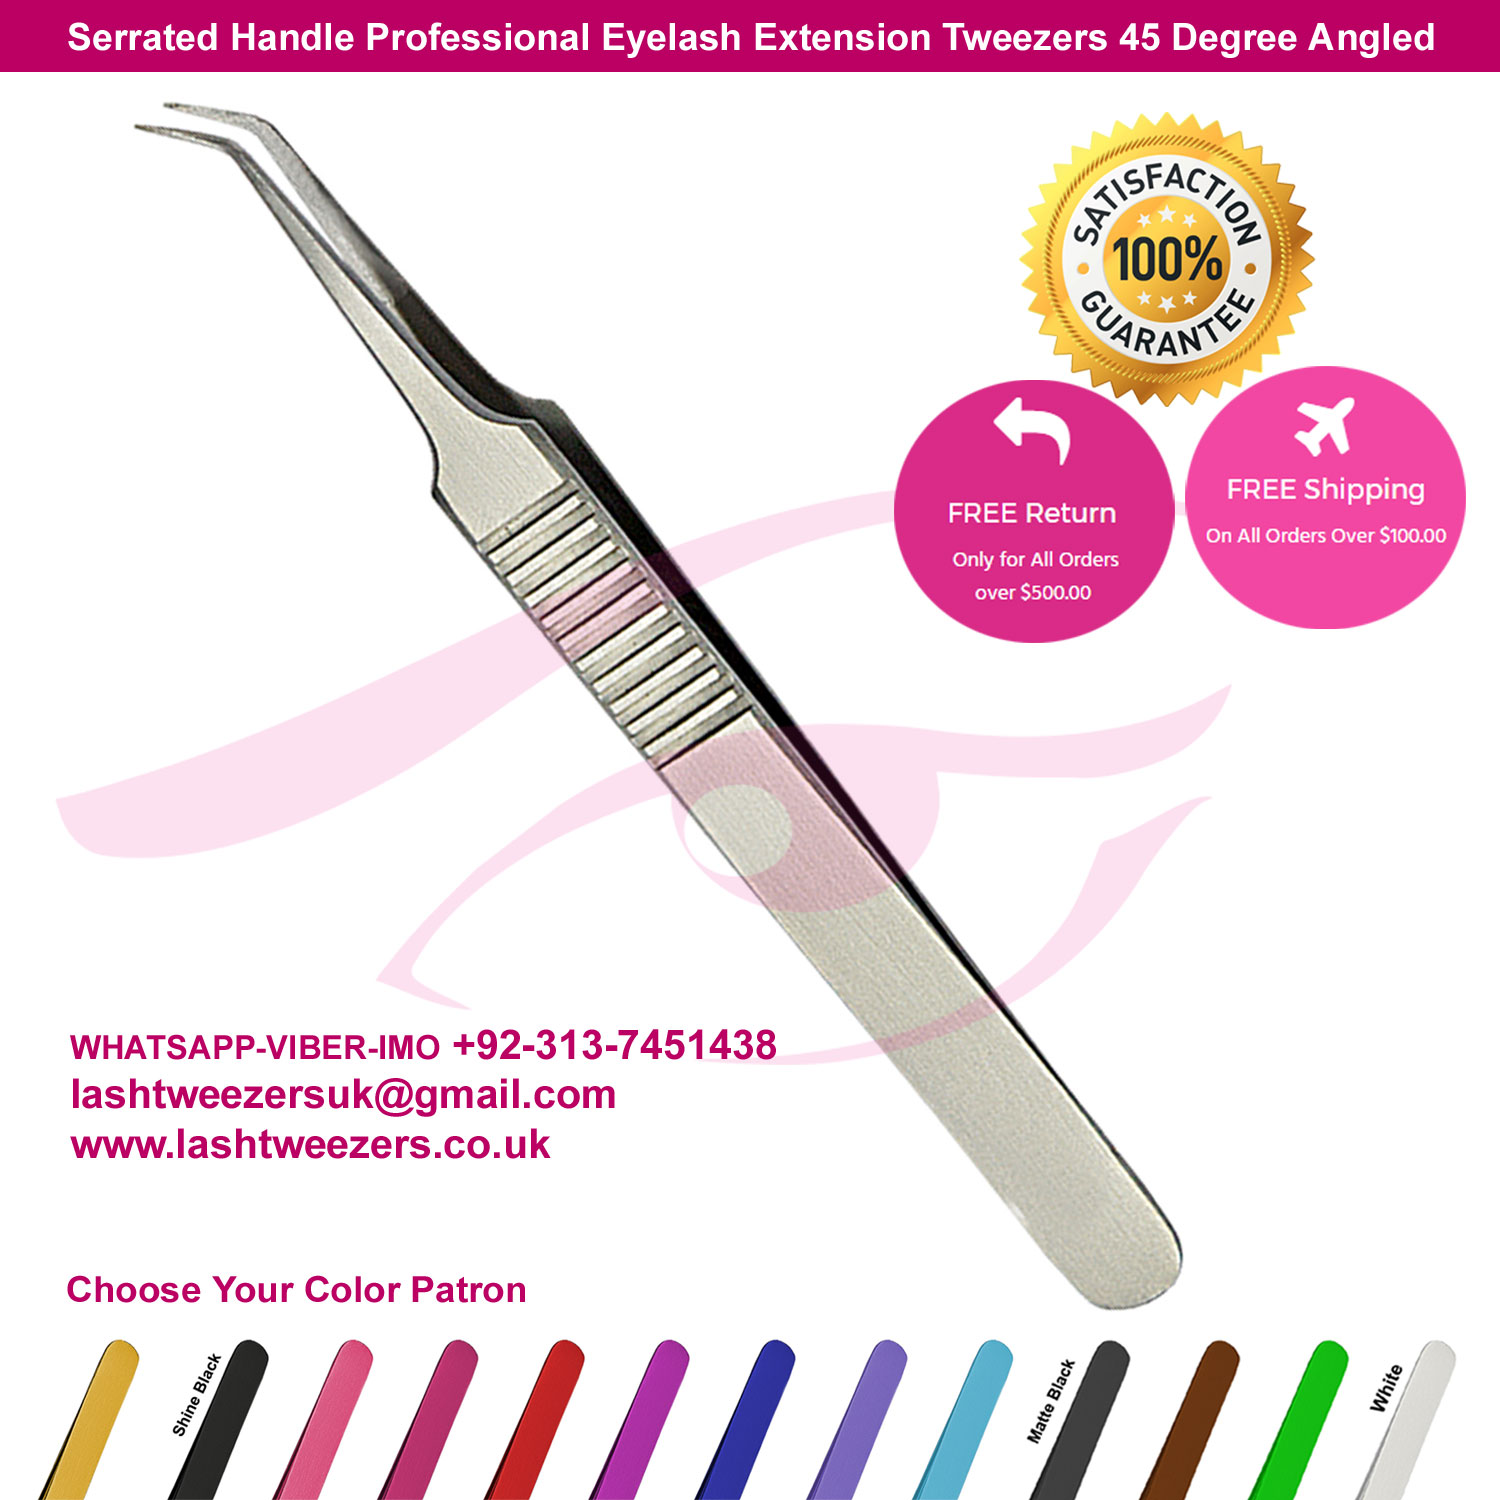 Serrated Handle Professional Eyelash Extension Tweezers 45 Degree Angled